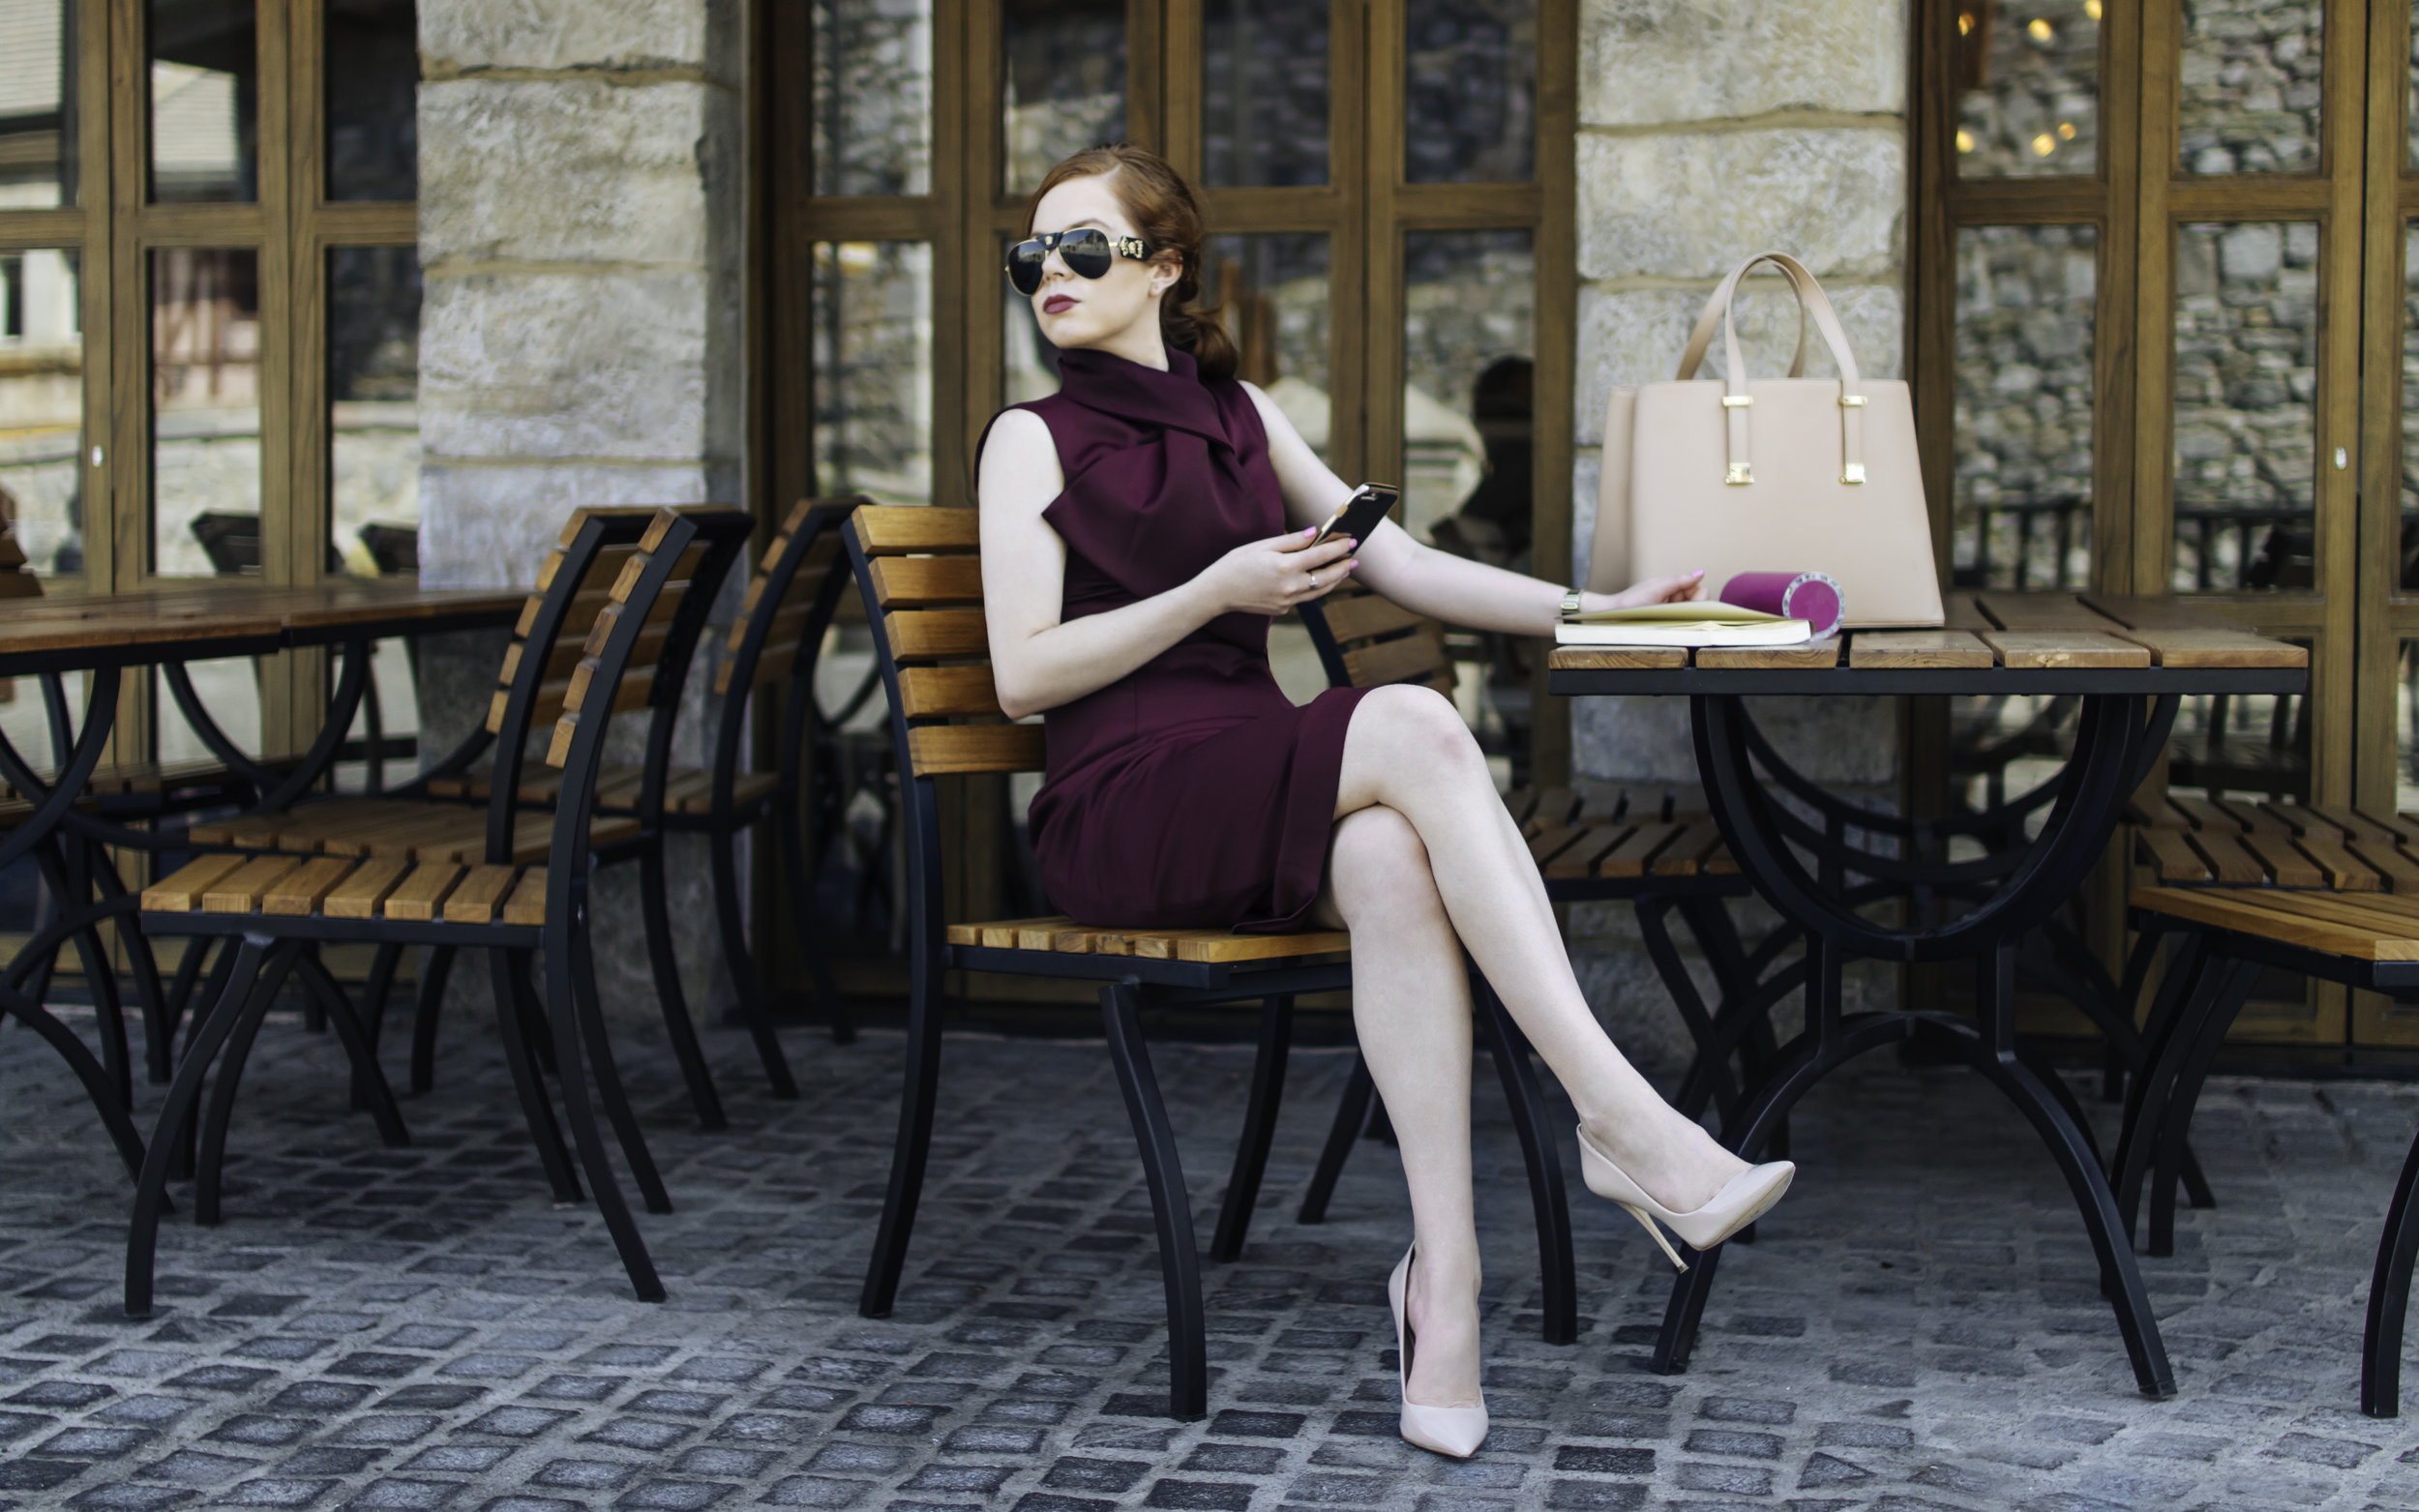 Photos are taken in Dubai Parks and Resorts. For today's chic office look, I'm wearing Ted Baker dress, nude Aldo heels, Versace sunglasses, Ted Baker bag and Michael Kors watch. Look linked below.